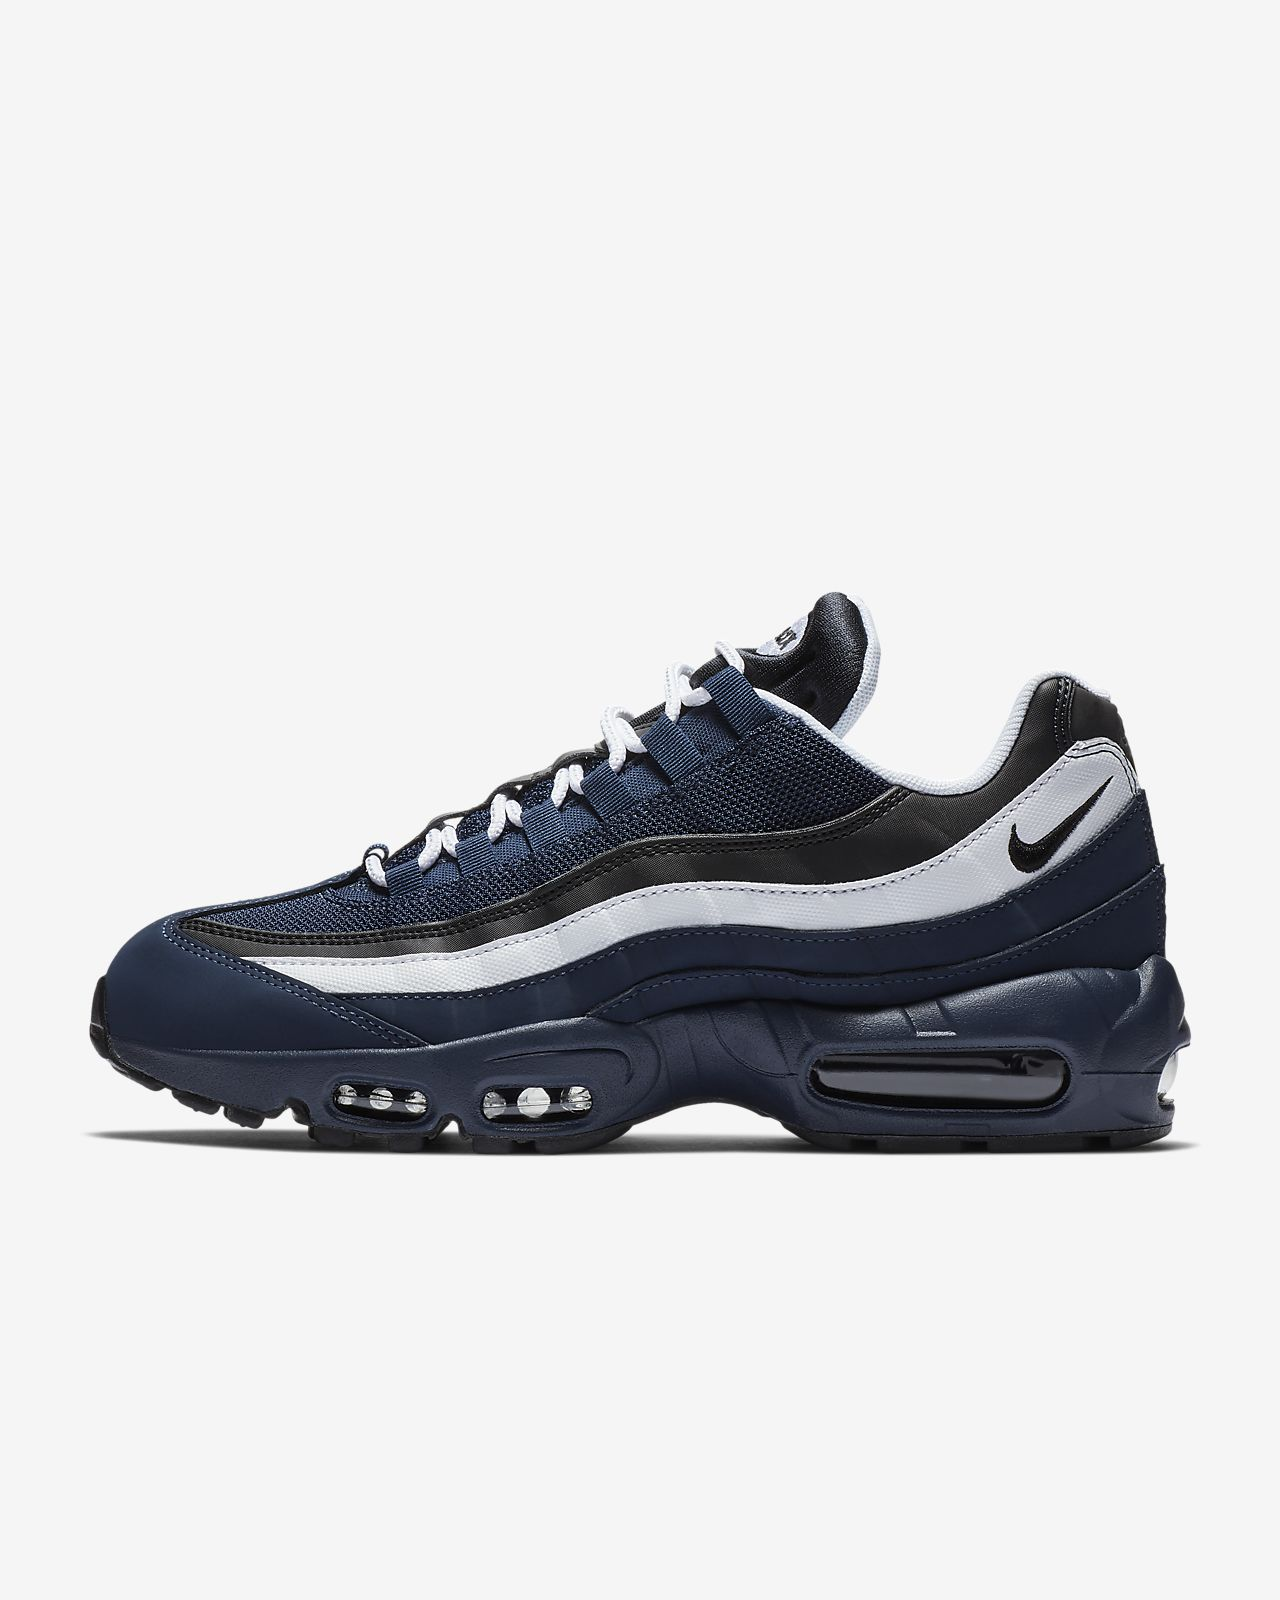 official photos 4316a 476a5 Nike Air Max 95 Essential